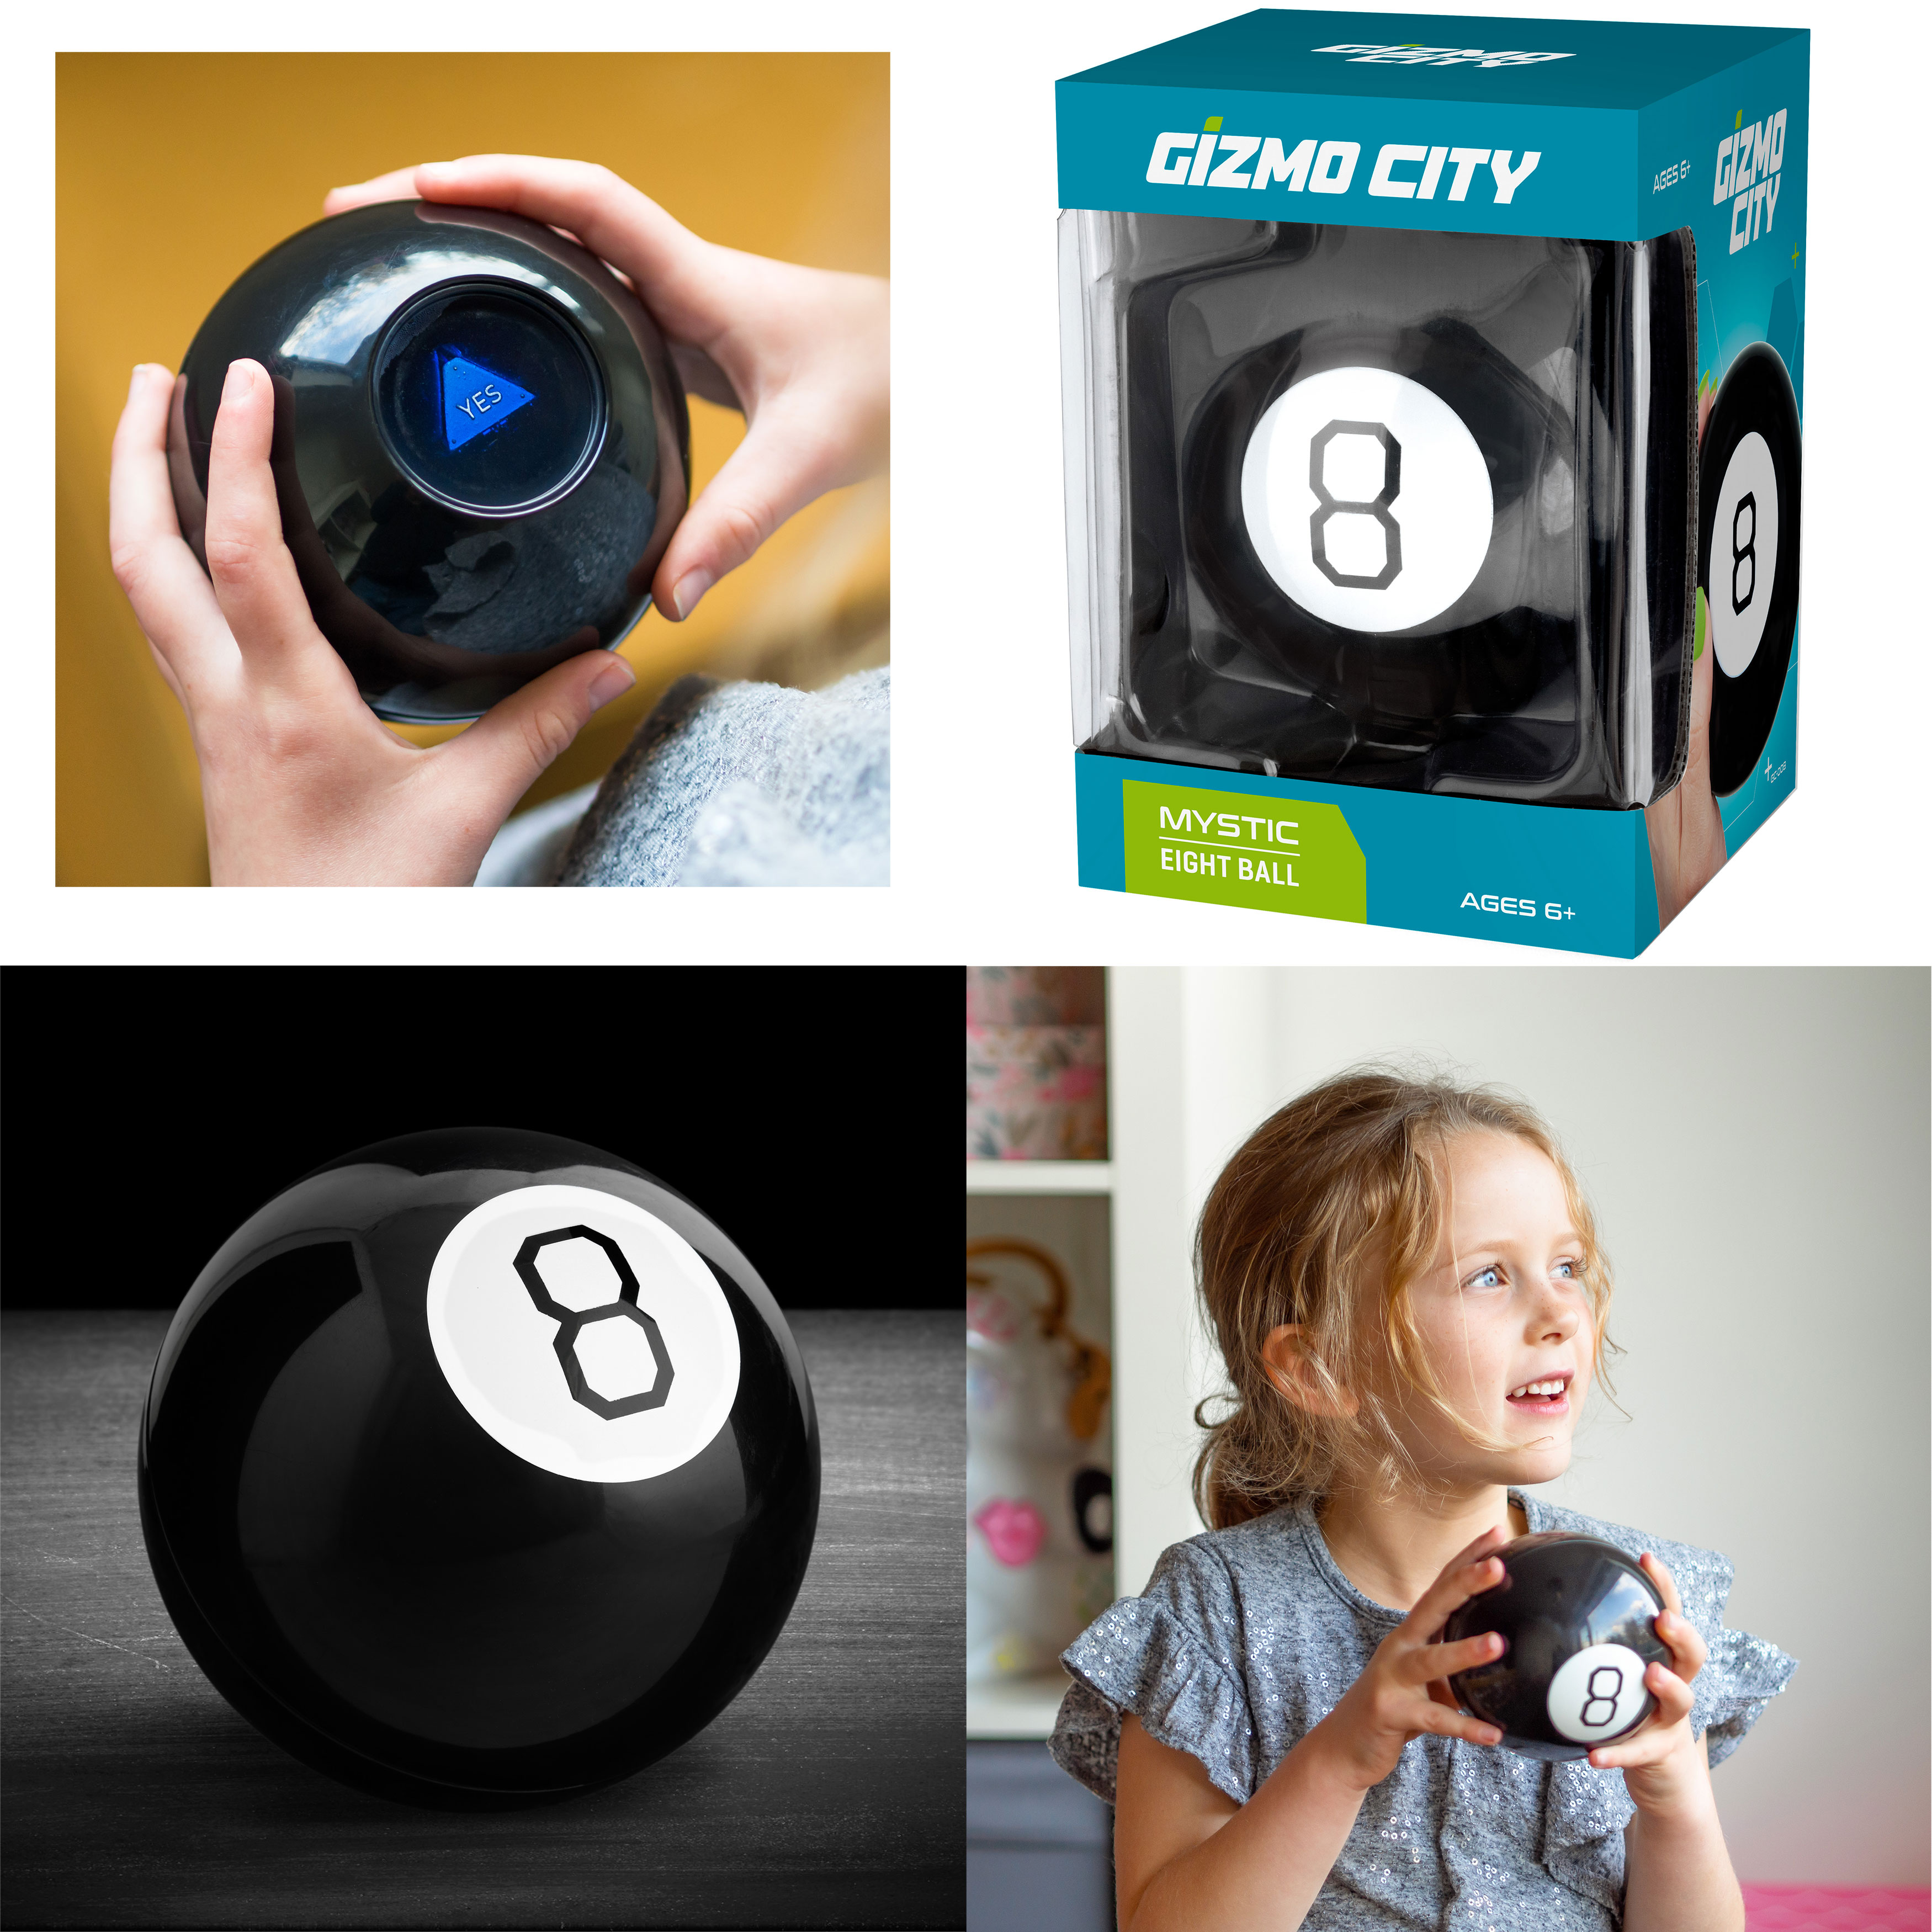 8-Ball Magic Mystic Decision Making Fortune Telling Cool Toys Kids Children Gift